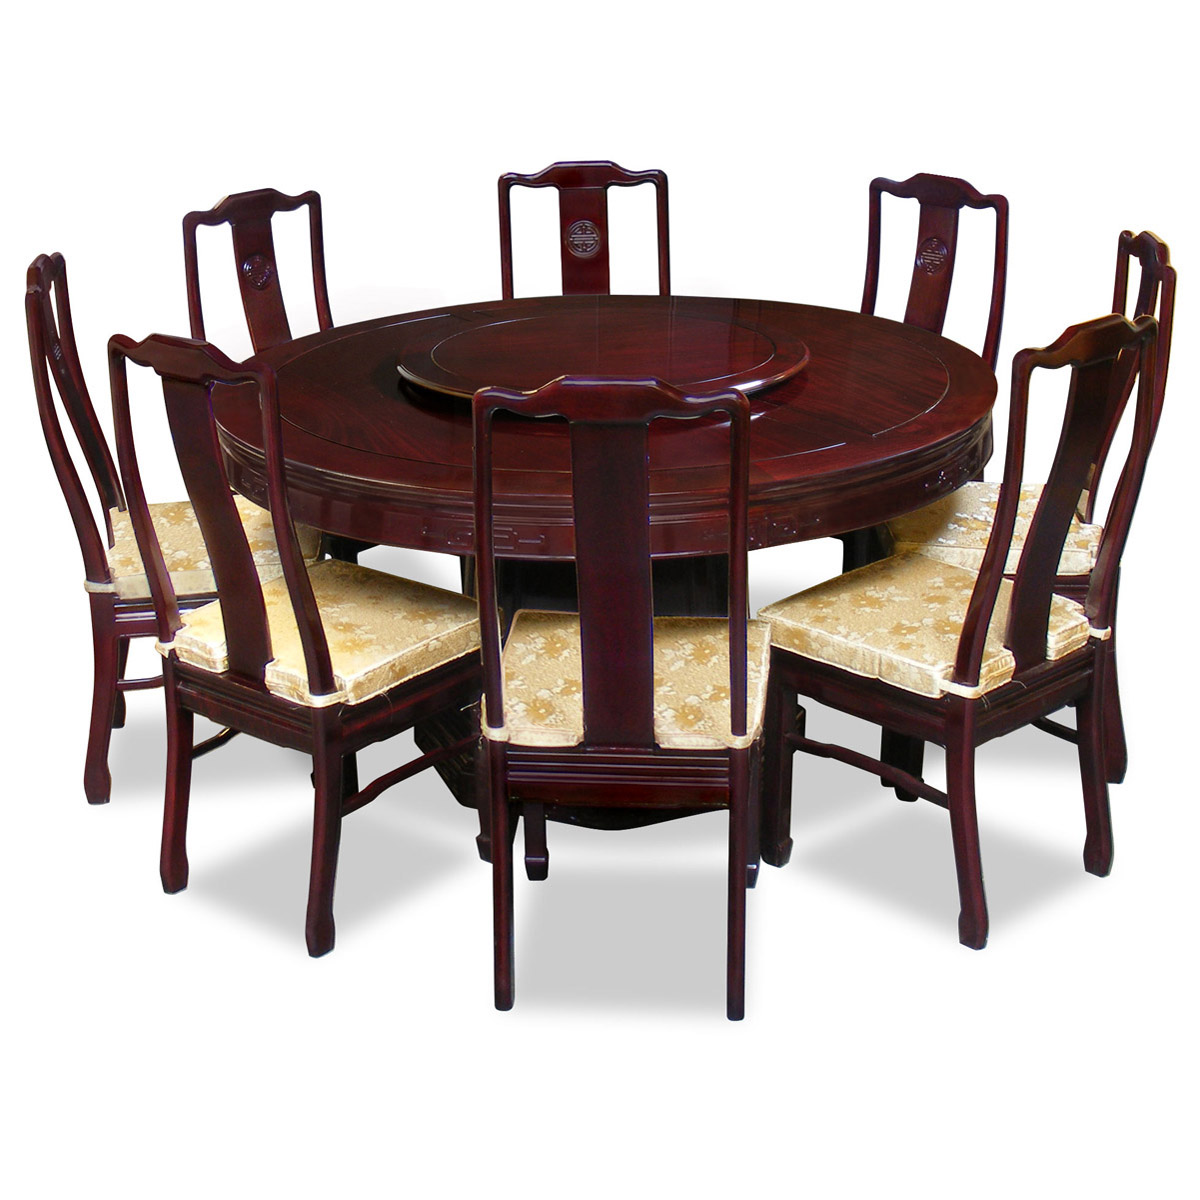 Perfect 8 person round dining table homesfeed for Dining table chairs